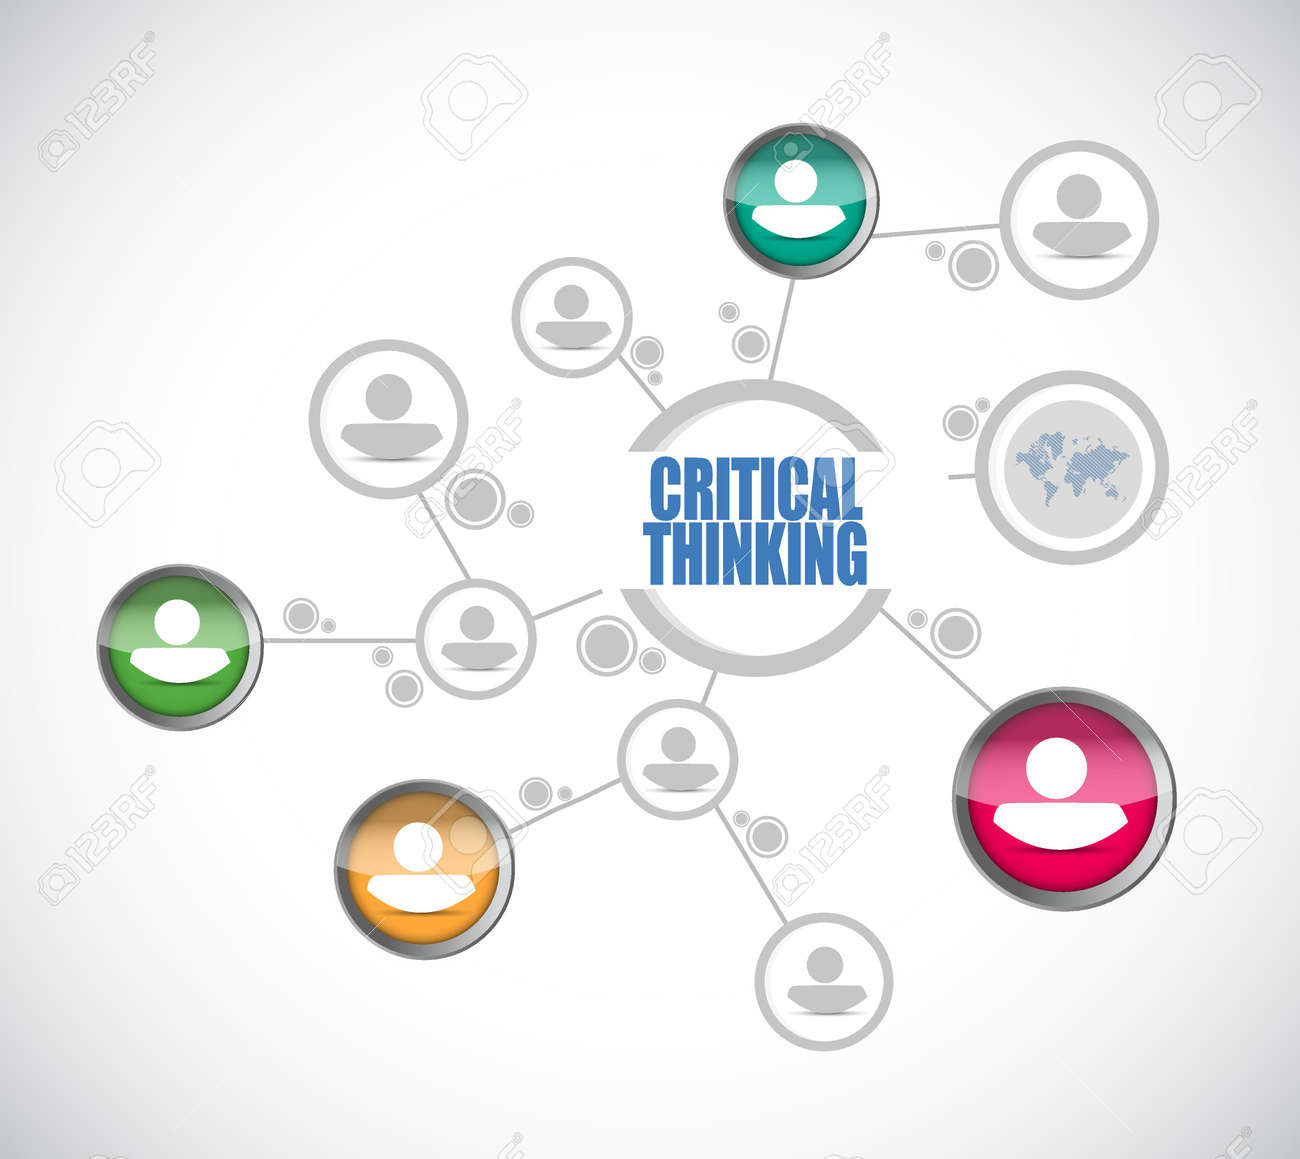 Critical thinking diagram sign illustration design graphic royalty critical thinking diagram sign illustration design graphic stock vector 54134861 pooptronica Image collections